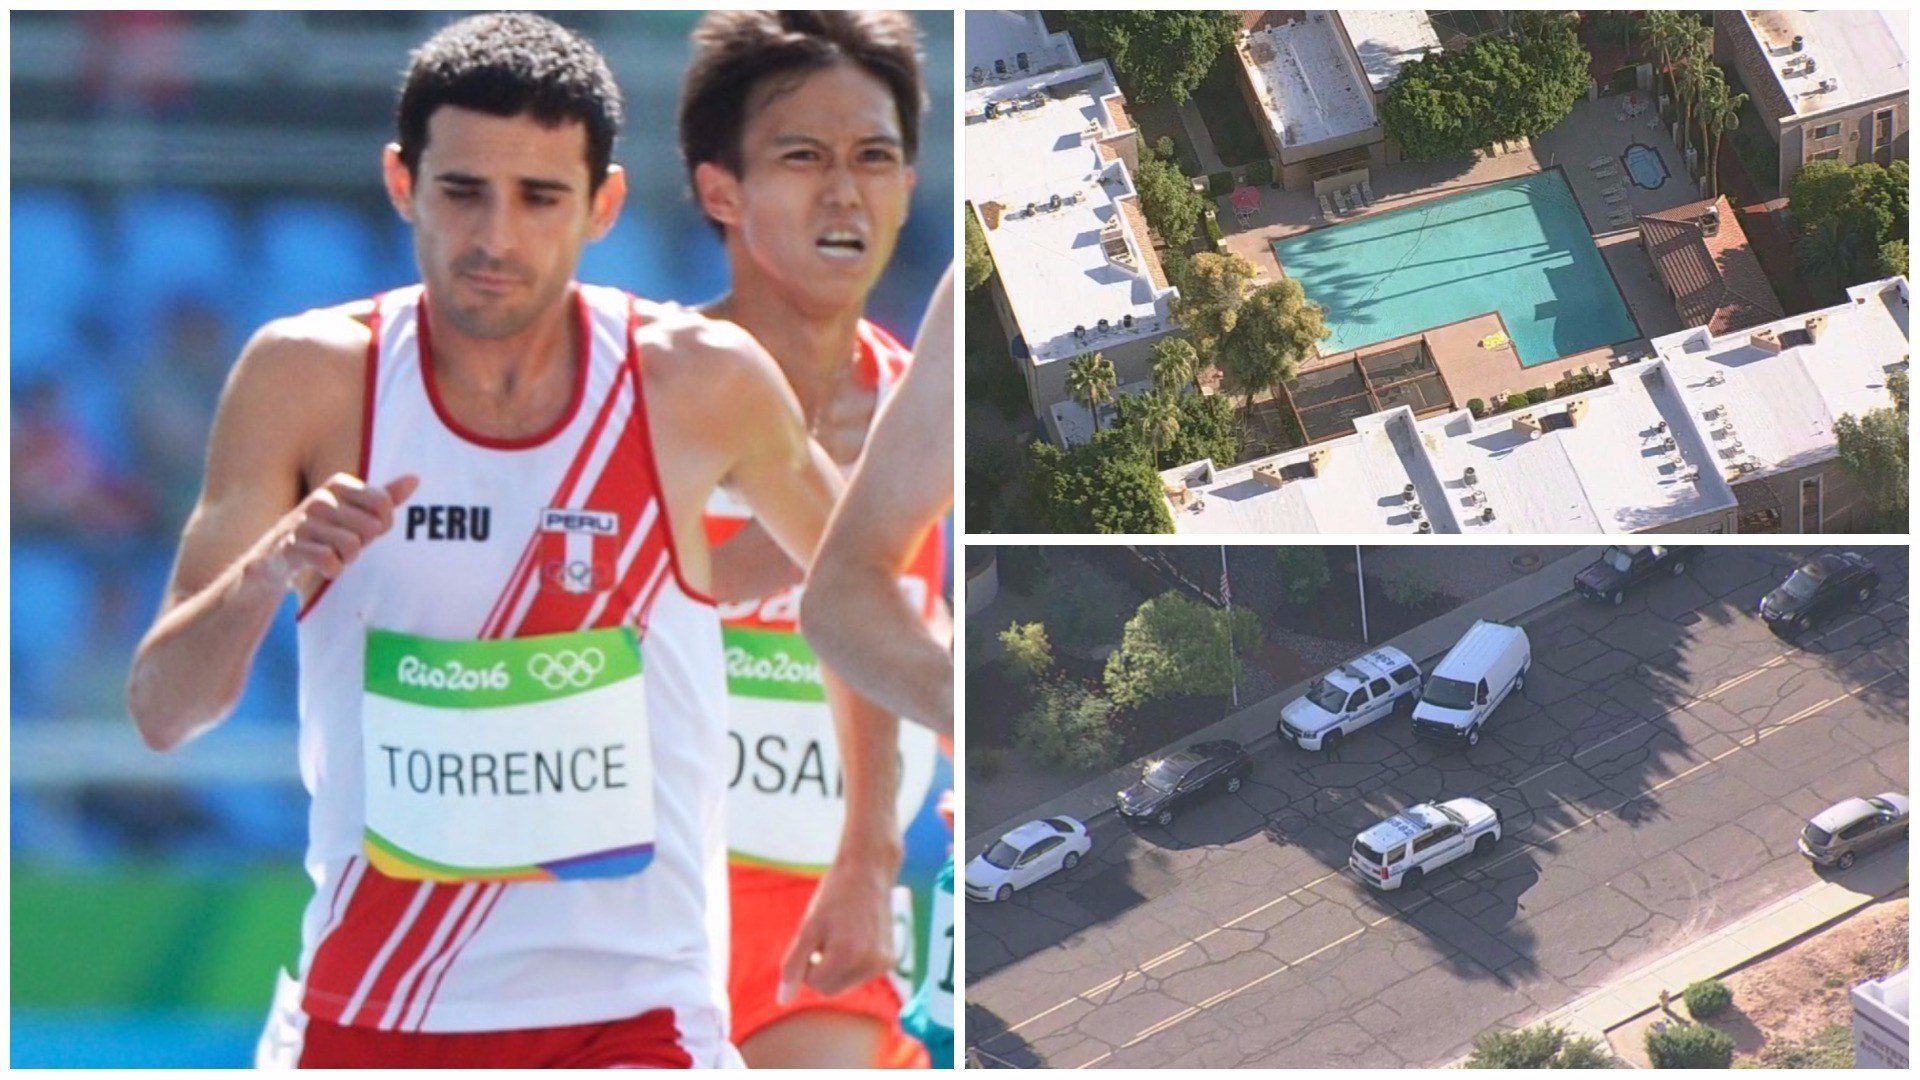 31-Year-Old Olympic Runner Found Mysteriously Dead In Swimming Pool